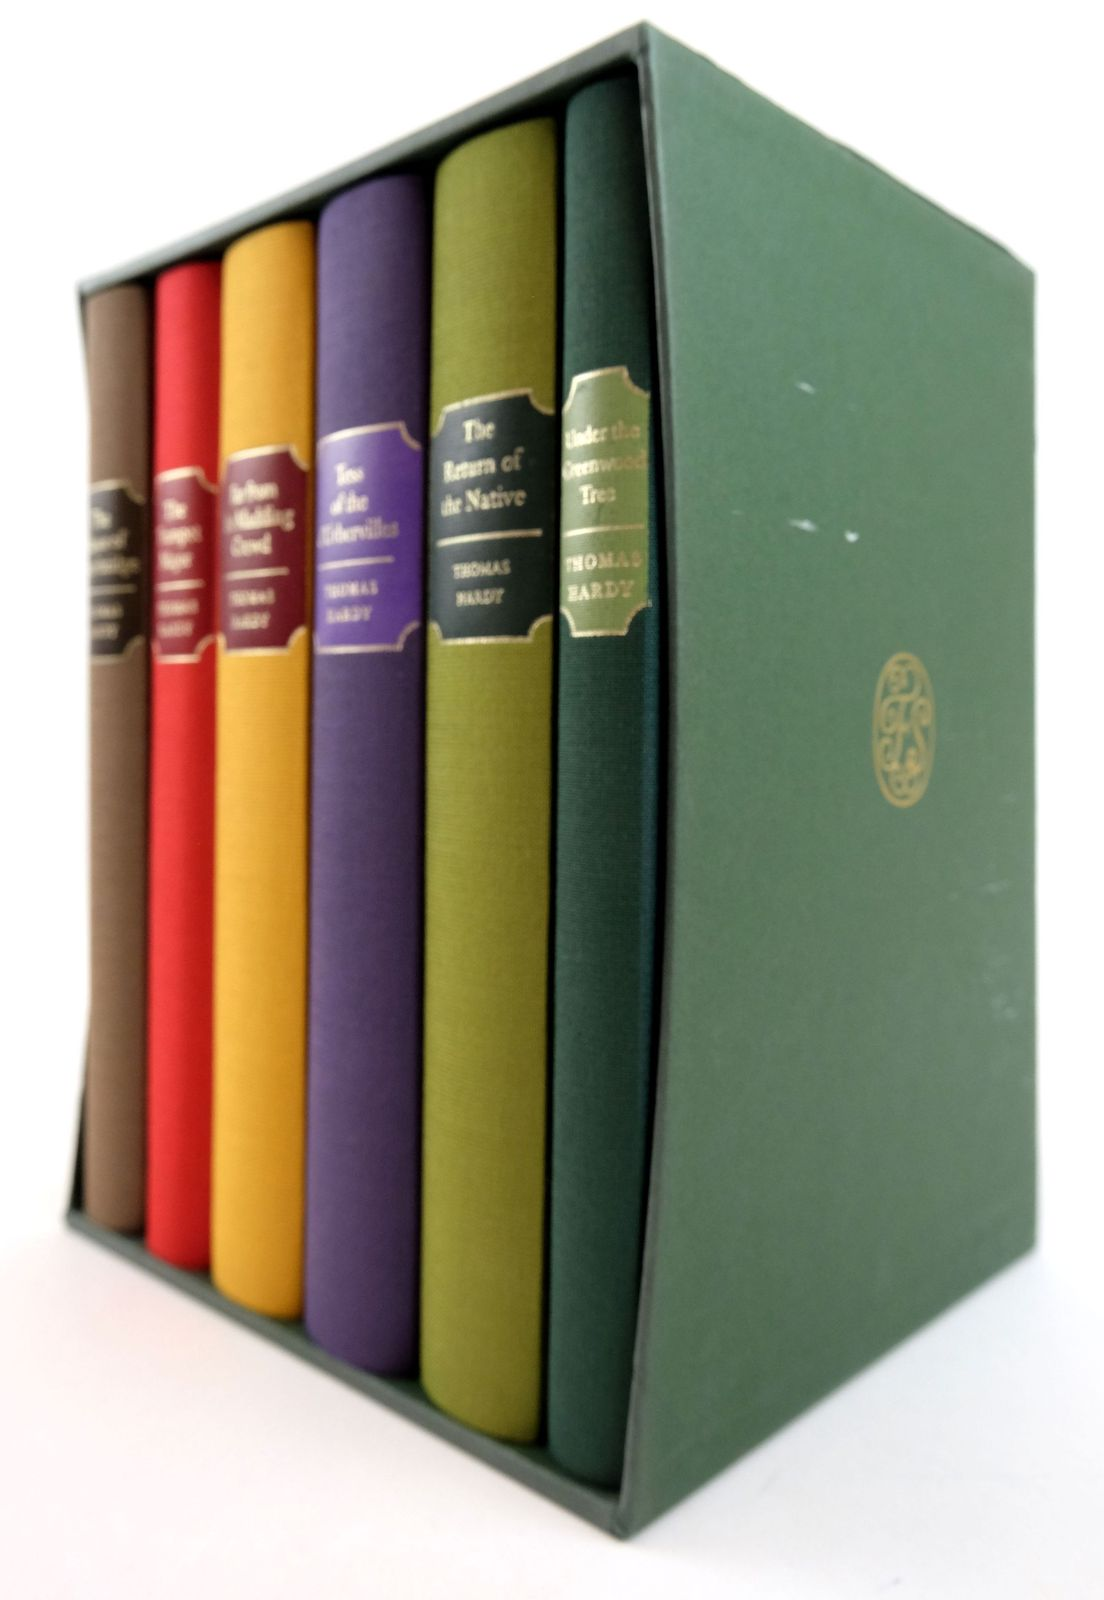 Photo of THE MAYOR OF CASTERBRIDGE; THE TRUMPET MAJOR; FAR FROM THE MADDING CROWD; TESS OF THE D'URBERVILLES; THE RETURN OF THE NATIVE; UNDER THE GREENWOOD TREE (6 VOLUMES) written by Hardy, Thomas published by Folio Society (STOCK CODE: 1819171)  for sale by Stella & Rose's Books